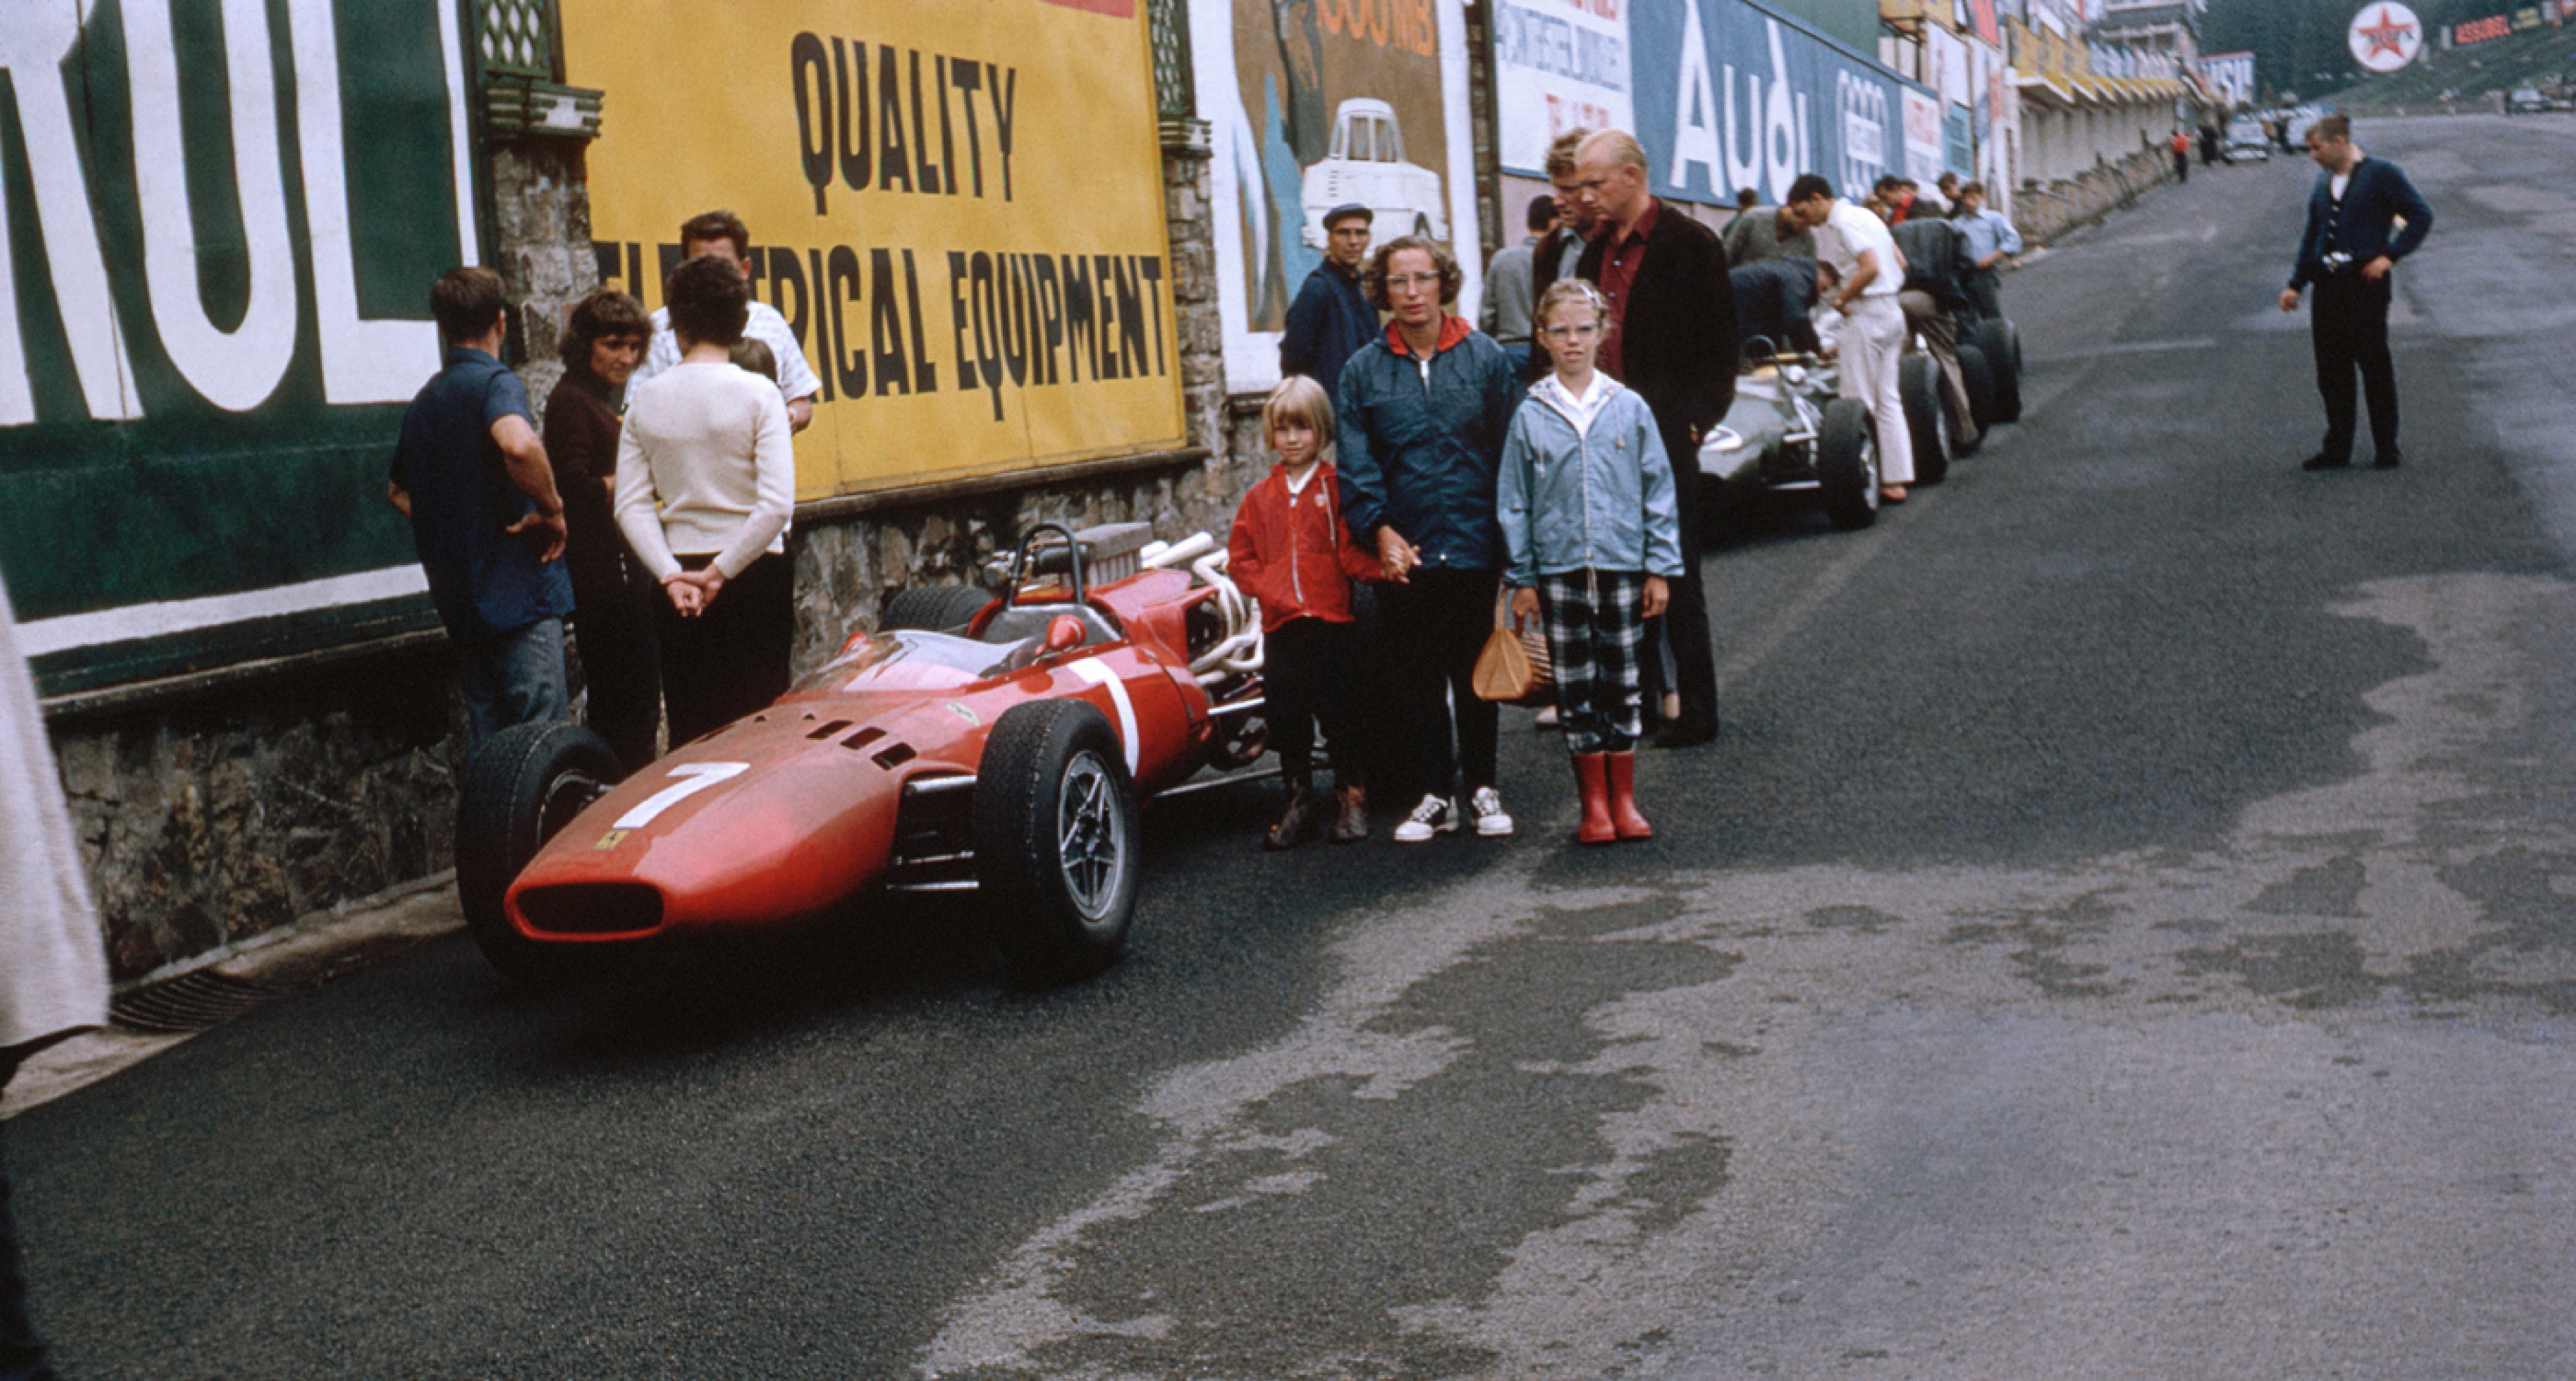 A belgian family poses for husband and father in front of Lorenzo Bandini's Ferrari 246 during the Belgian Grand Prix at Spa Francorchamps in 1966.